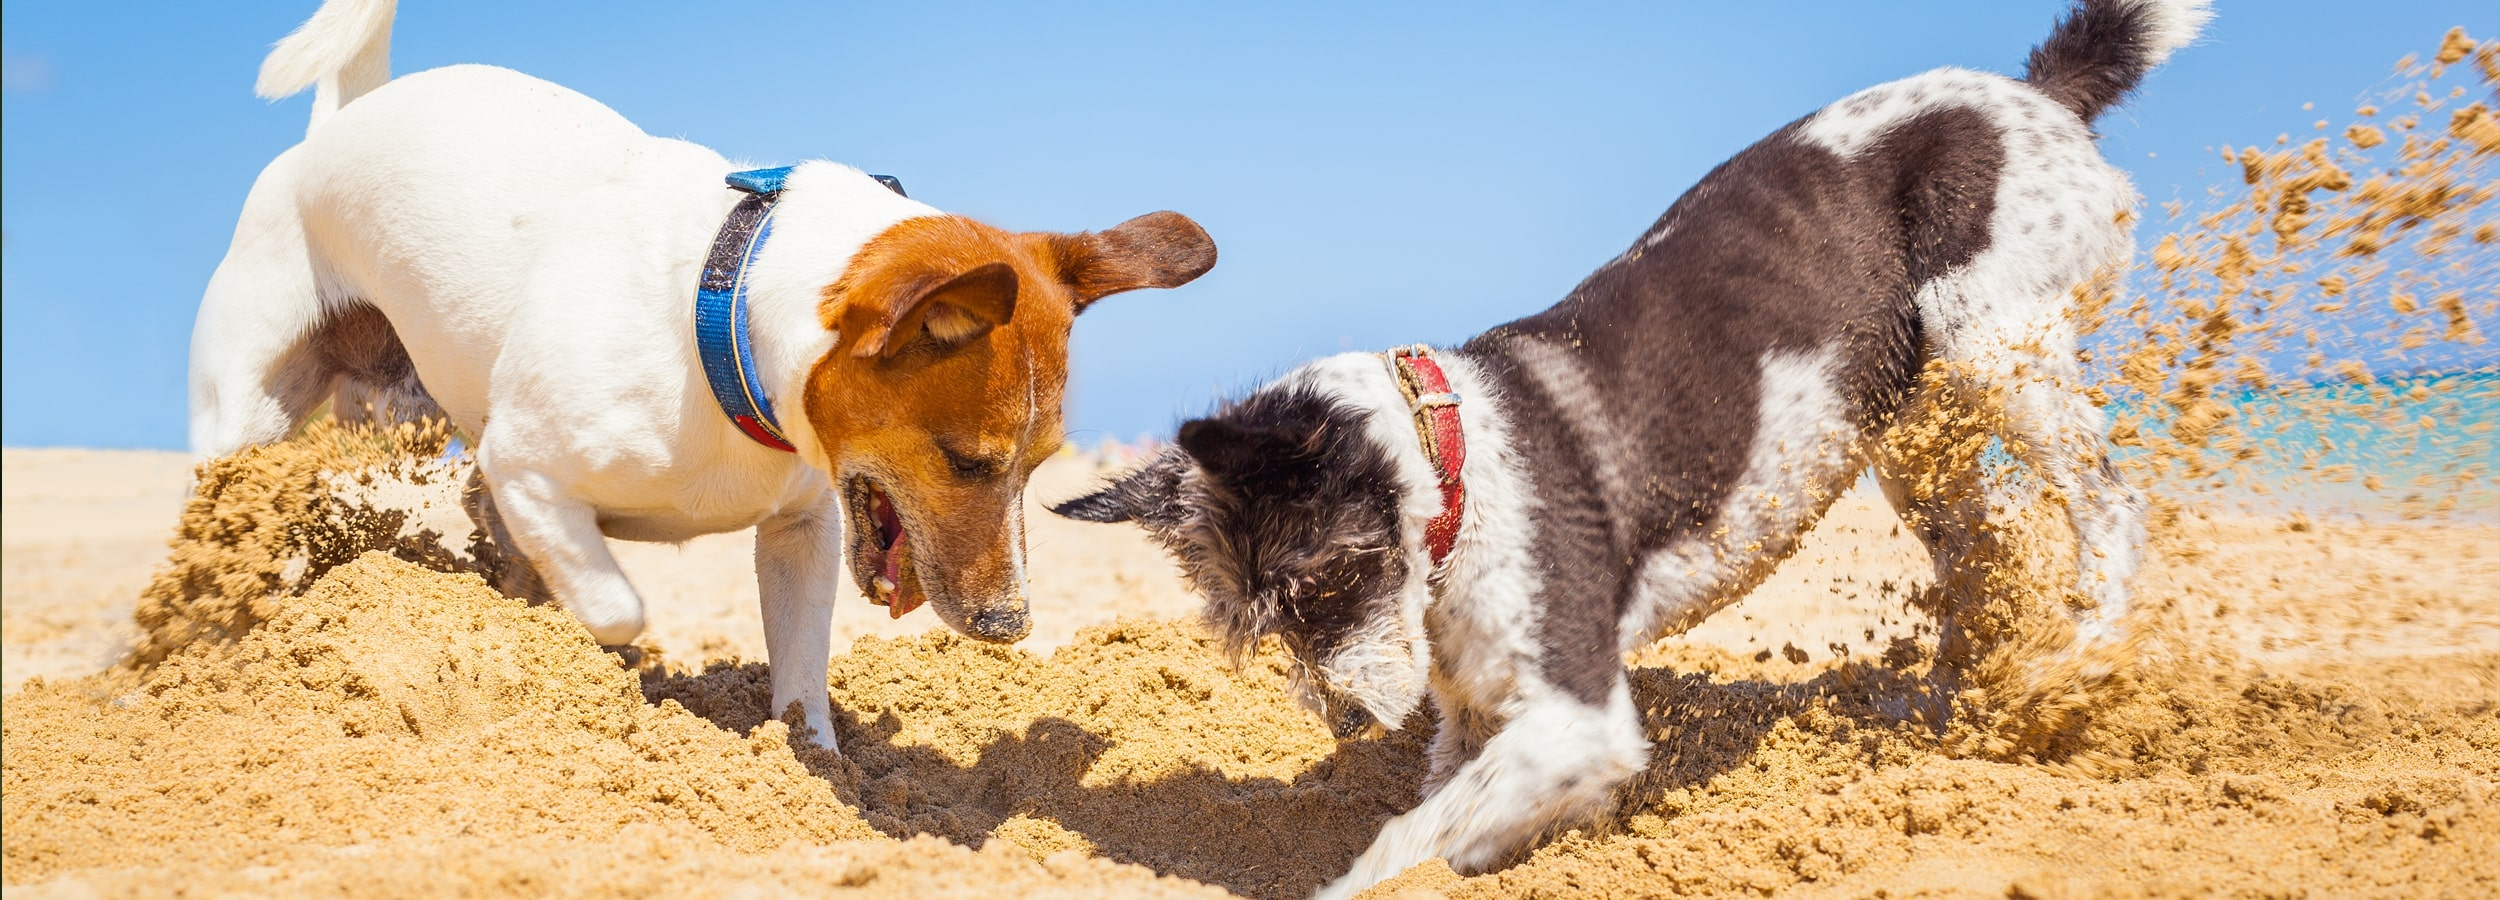 Two dogs digging